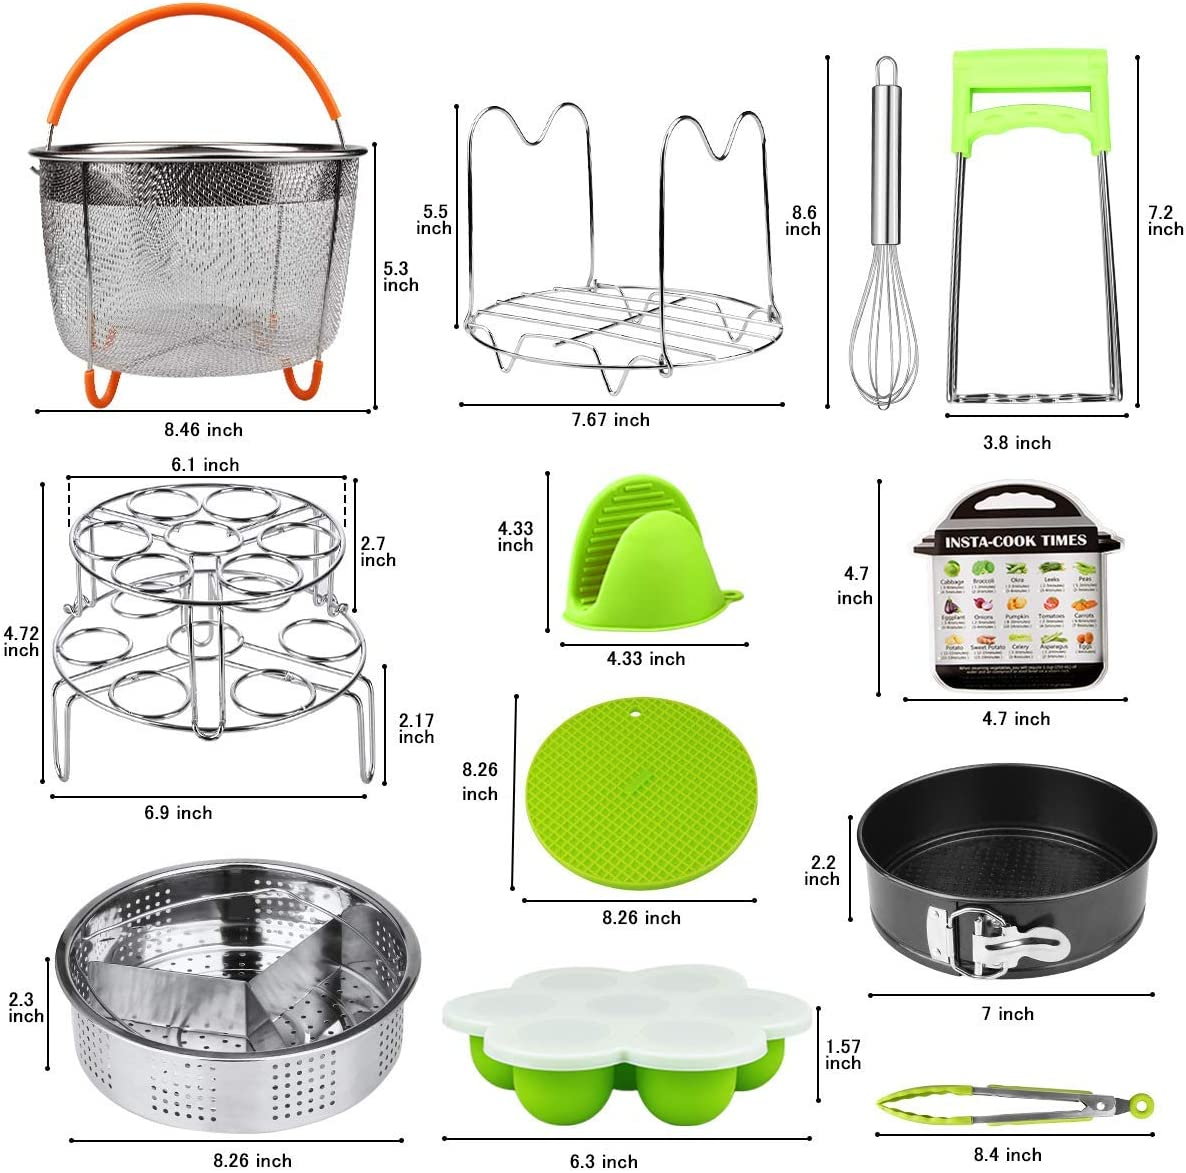 2 Silicone Trivet Mats 2 Steamer Baskets Egg Beater Stackable Egg Steamer Rack Springform Pan Aiduy 18 pieces Pressure Cooker Accessories Set Compatible with Instant Pot 6,8 Qt Renewed